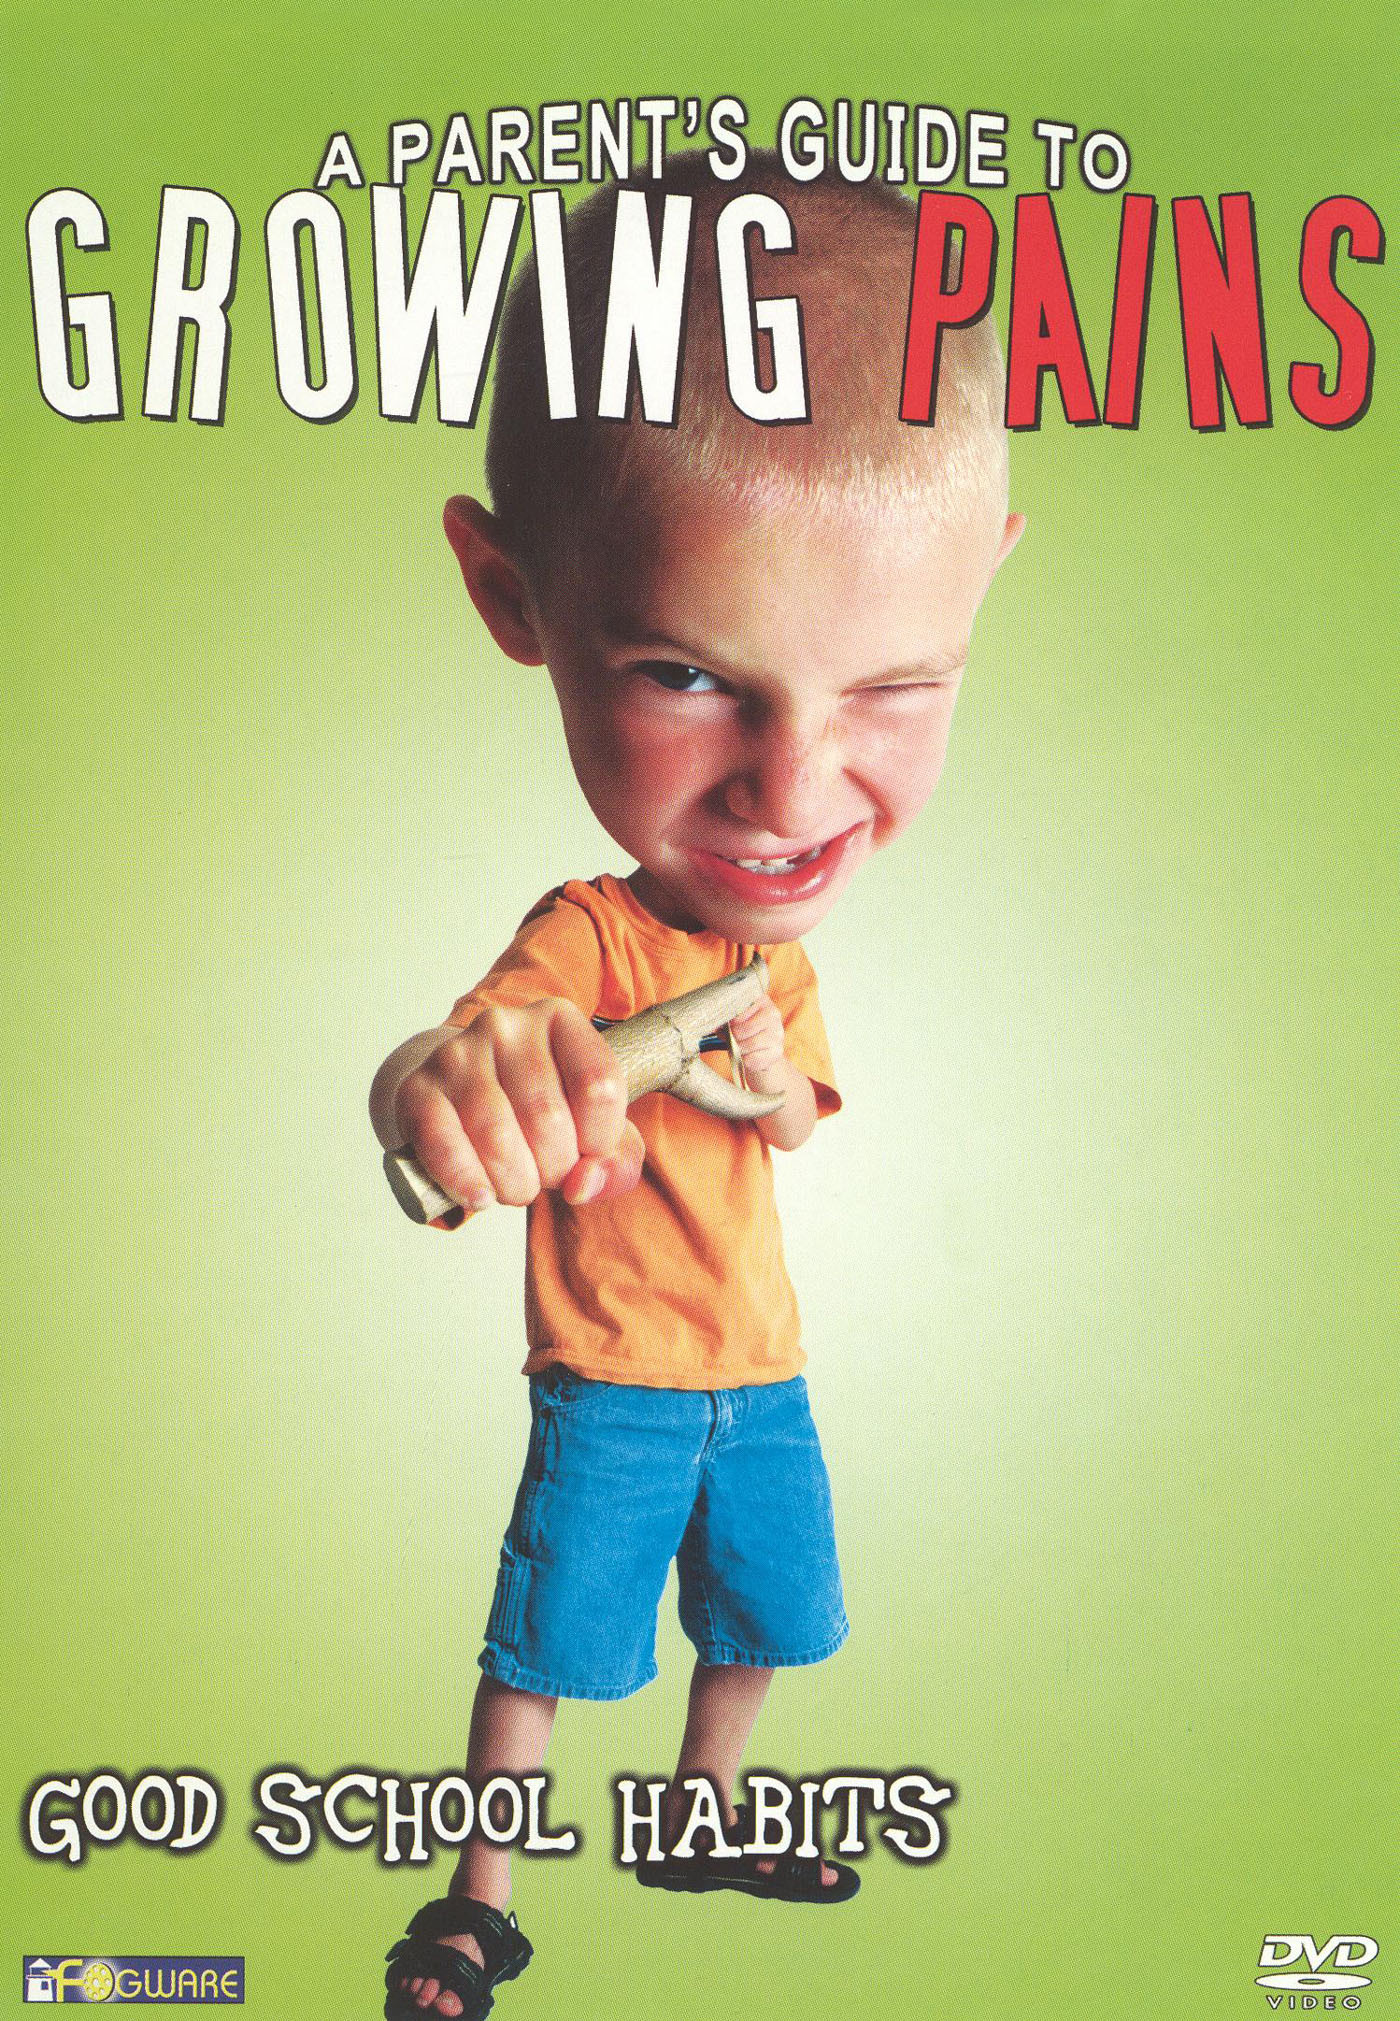 A Parent's Guide to Growing Pains: Good Study Habits